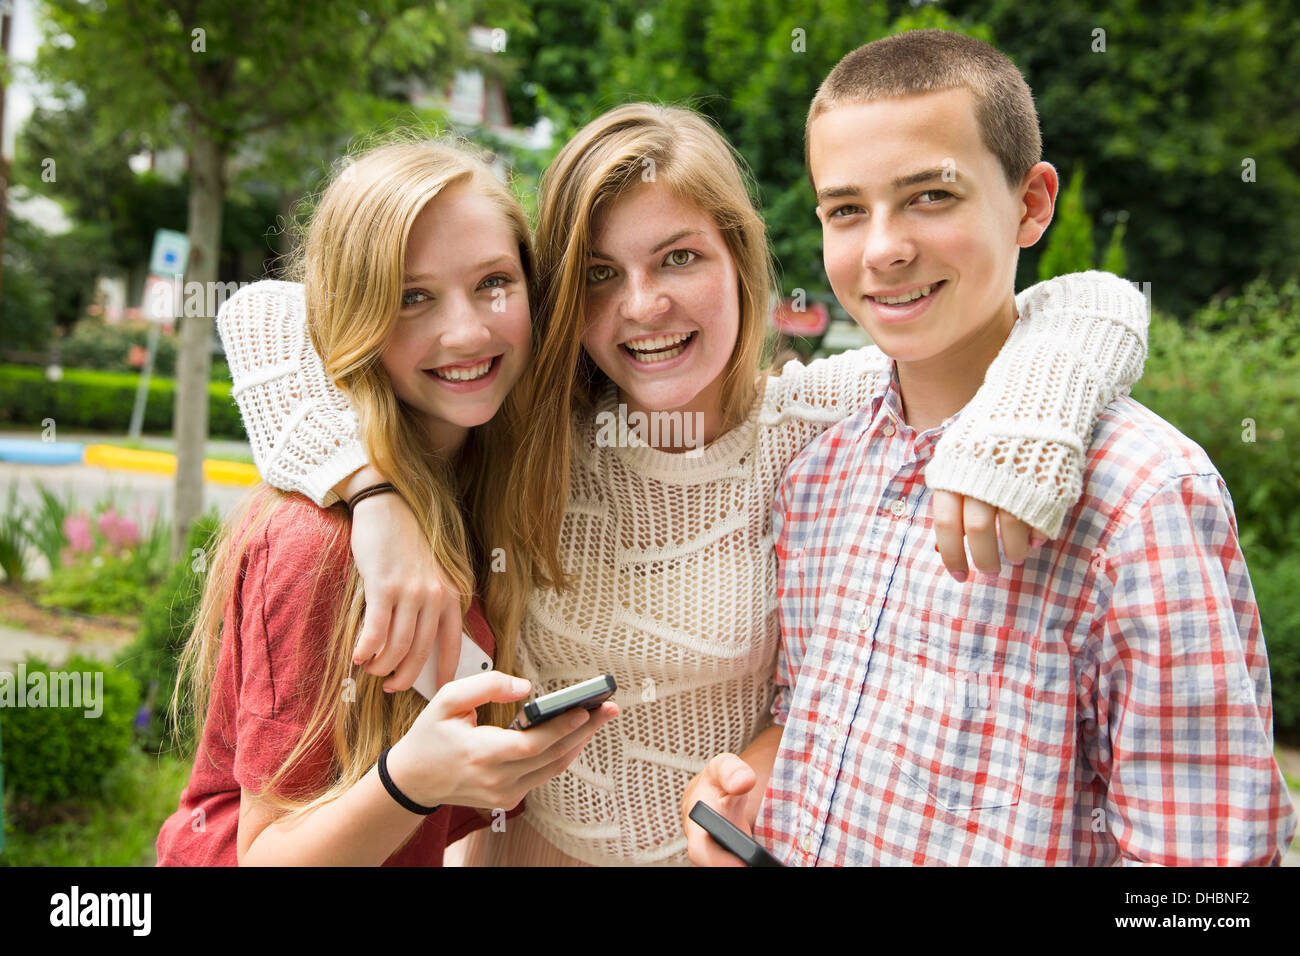 Three young people, two girls and a boy, posing and taking selfy photographs. - Stock Image